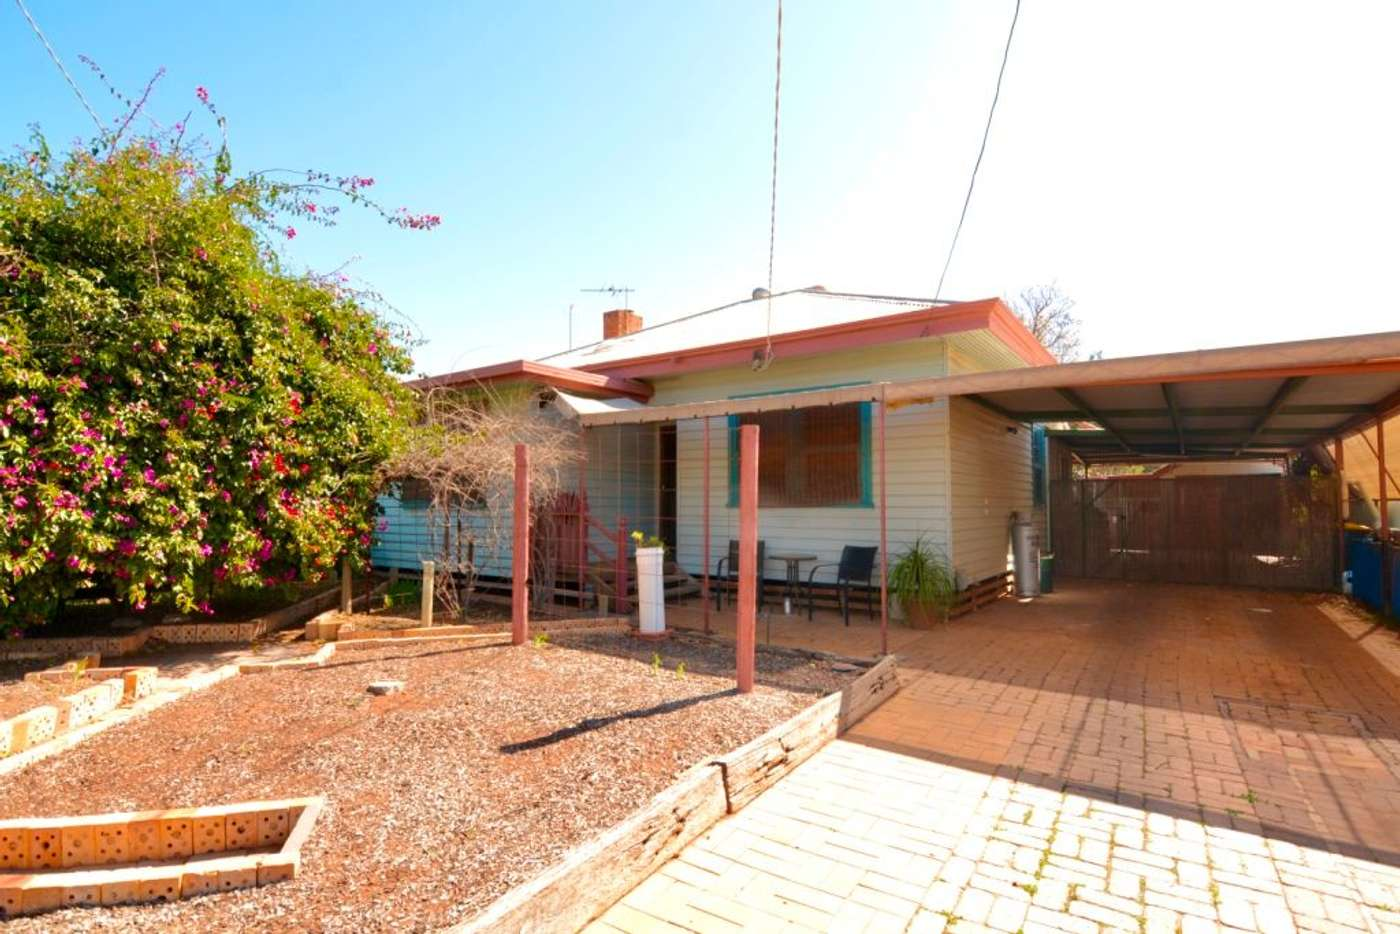 Main view of Homely house listing, 23 Olive Avenue, Mildura VIC 3500